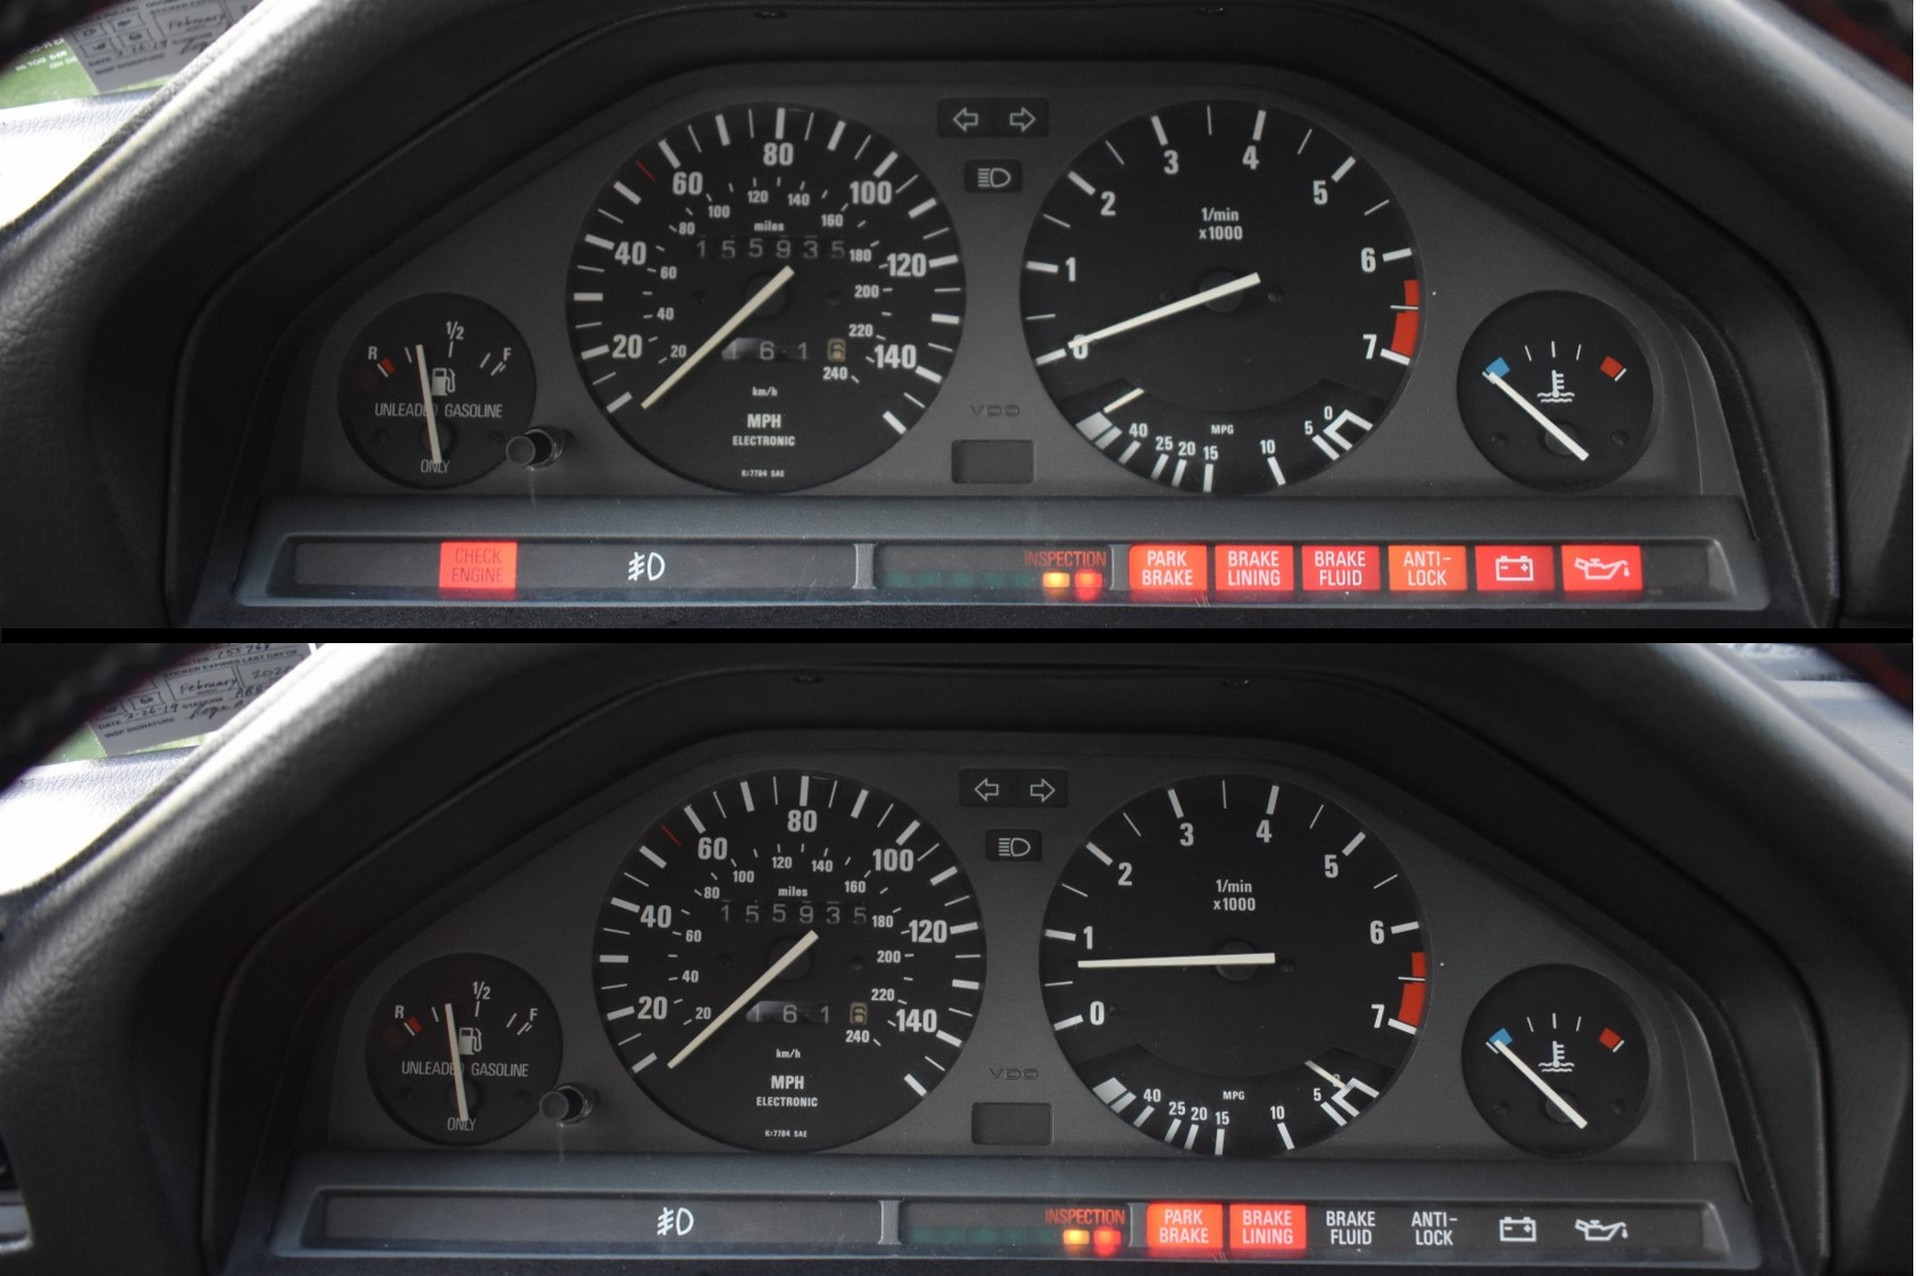 BMW E30 Buyers Guide Gauge Cluster